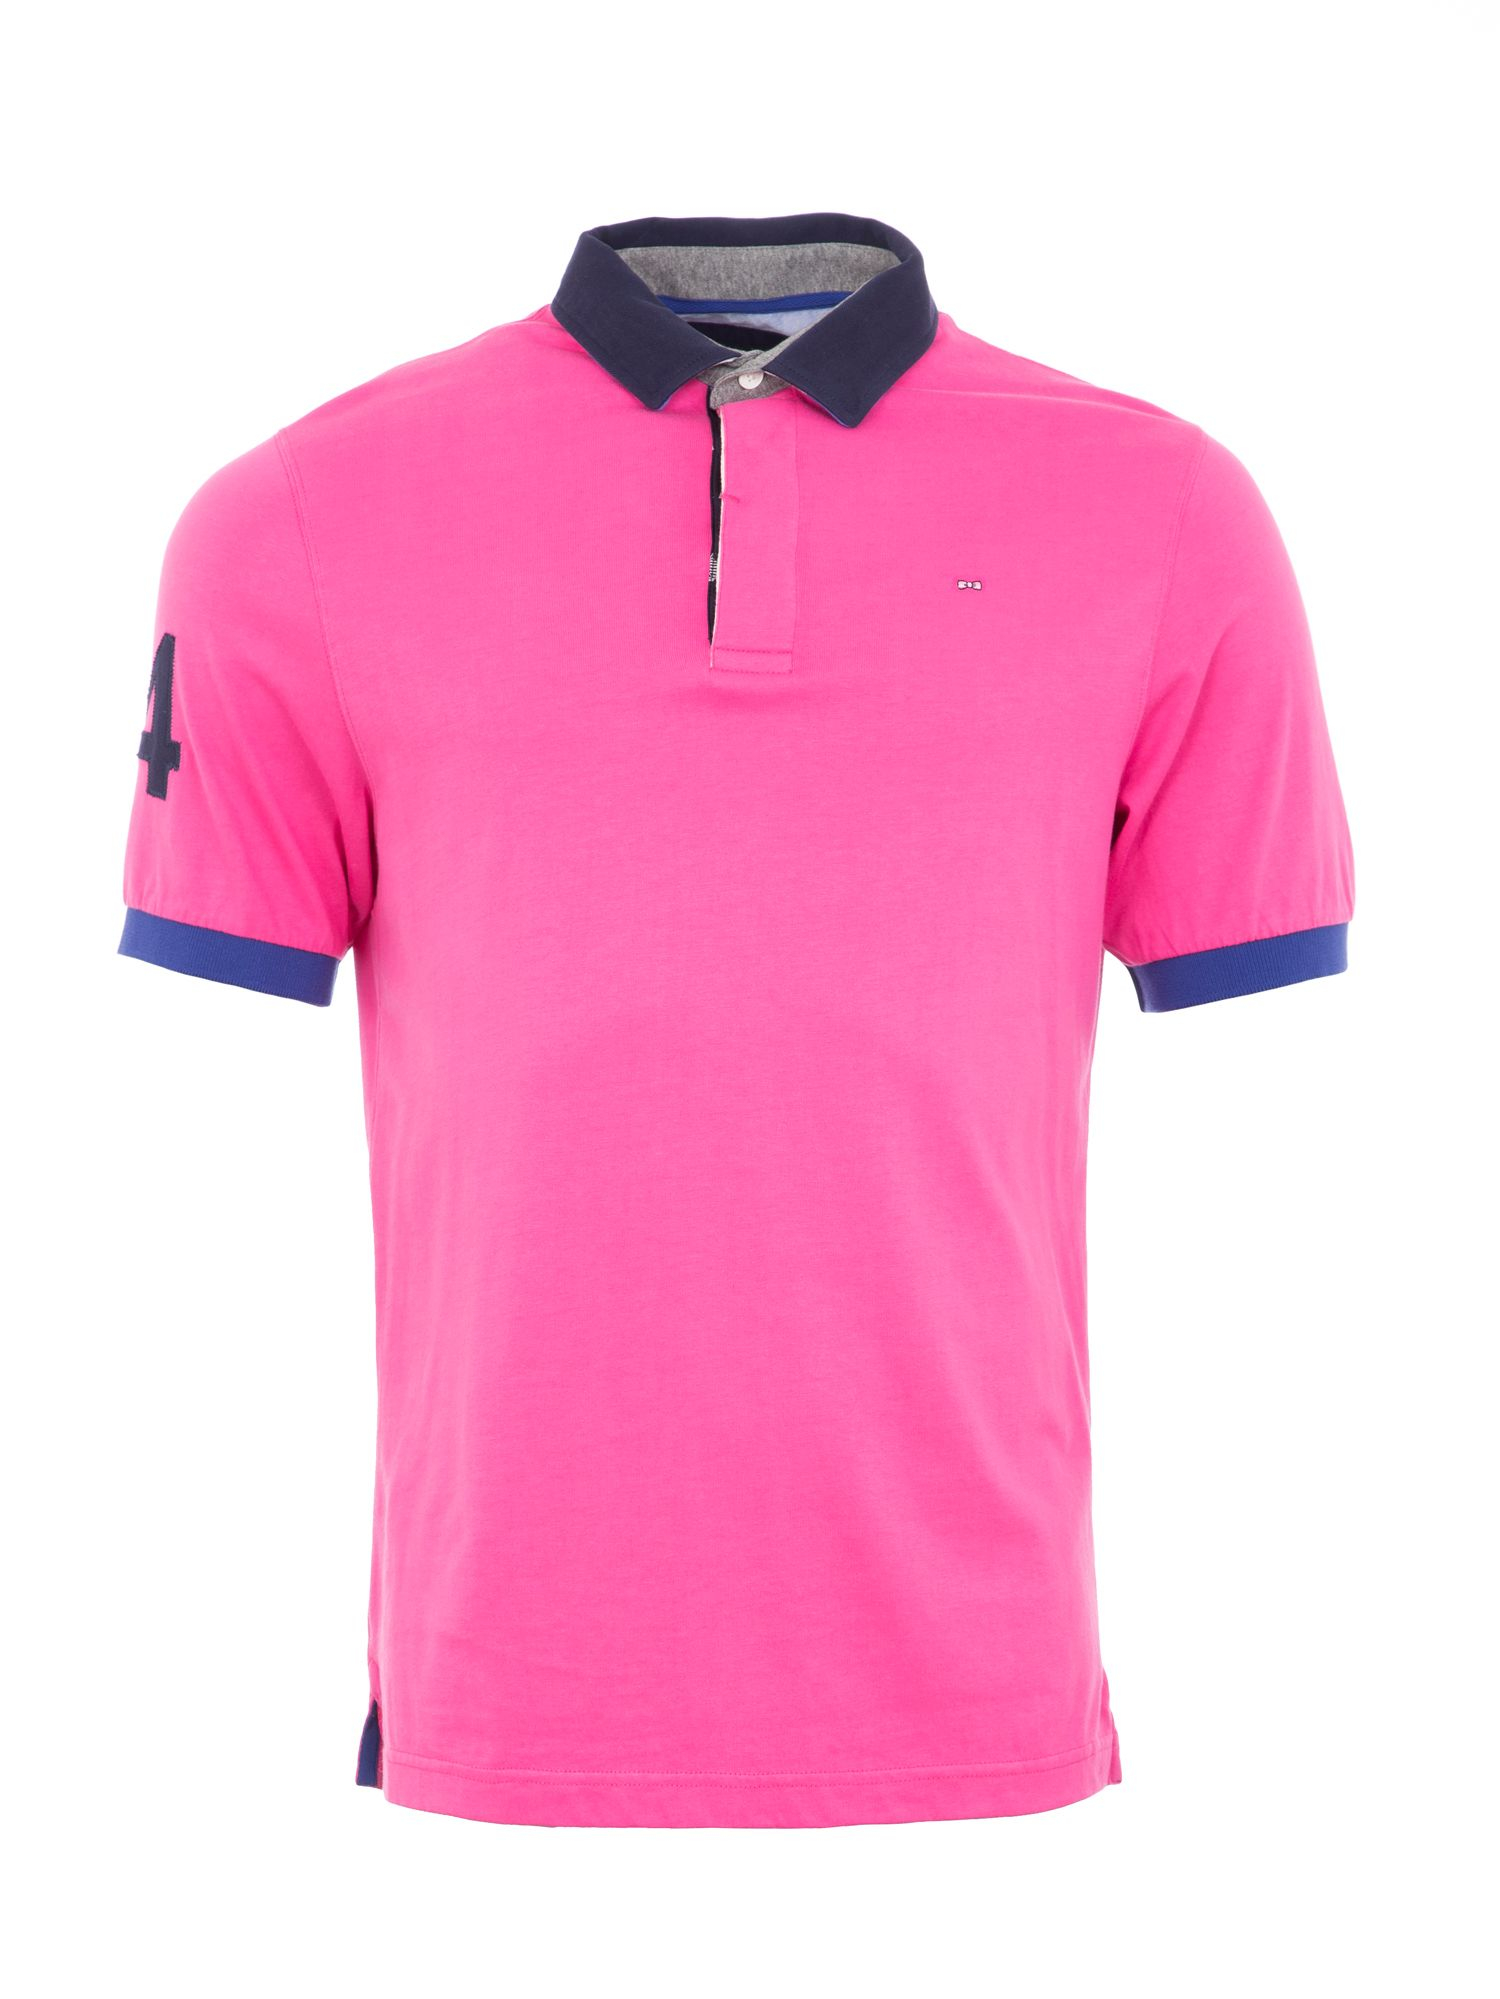 Eden Park Rugby Jersey In Pink For Men Lyst